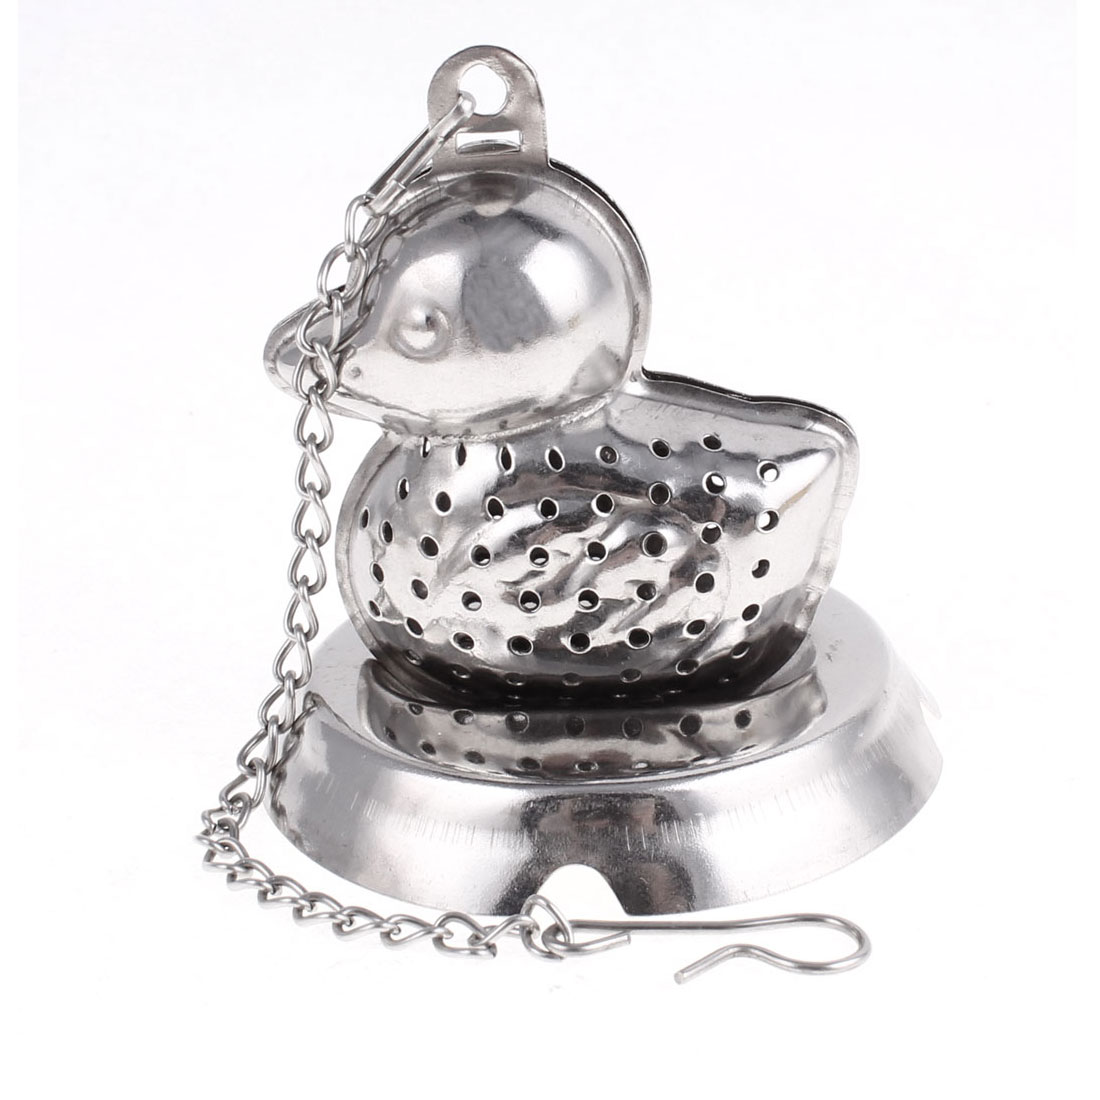 Stainless Steel Bird Shaped Tea Strainer Infuser Ball Spice Herb Filter